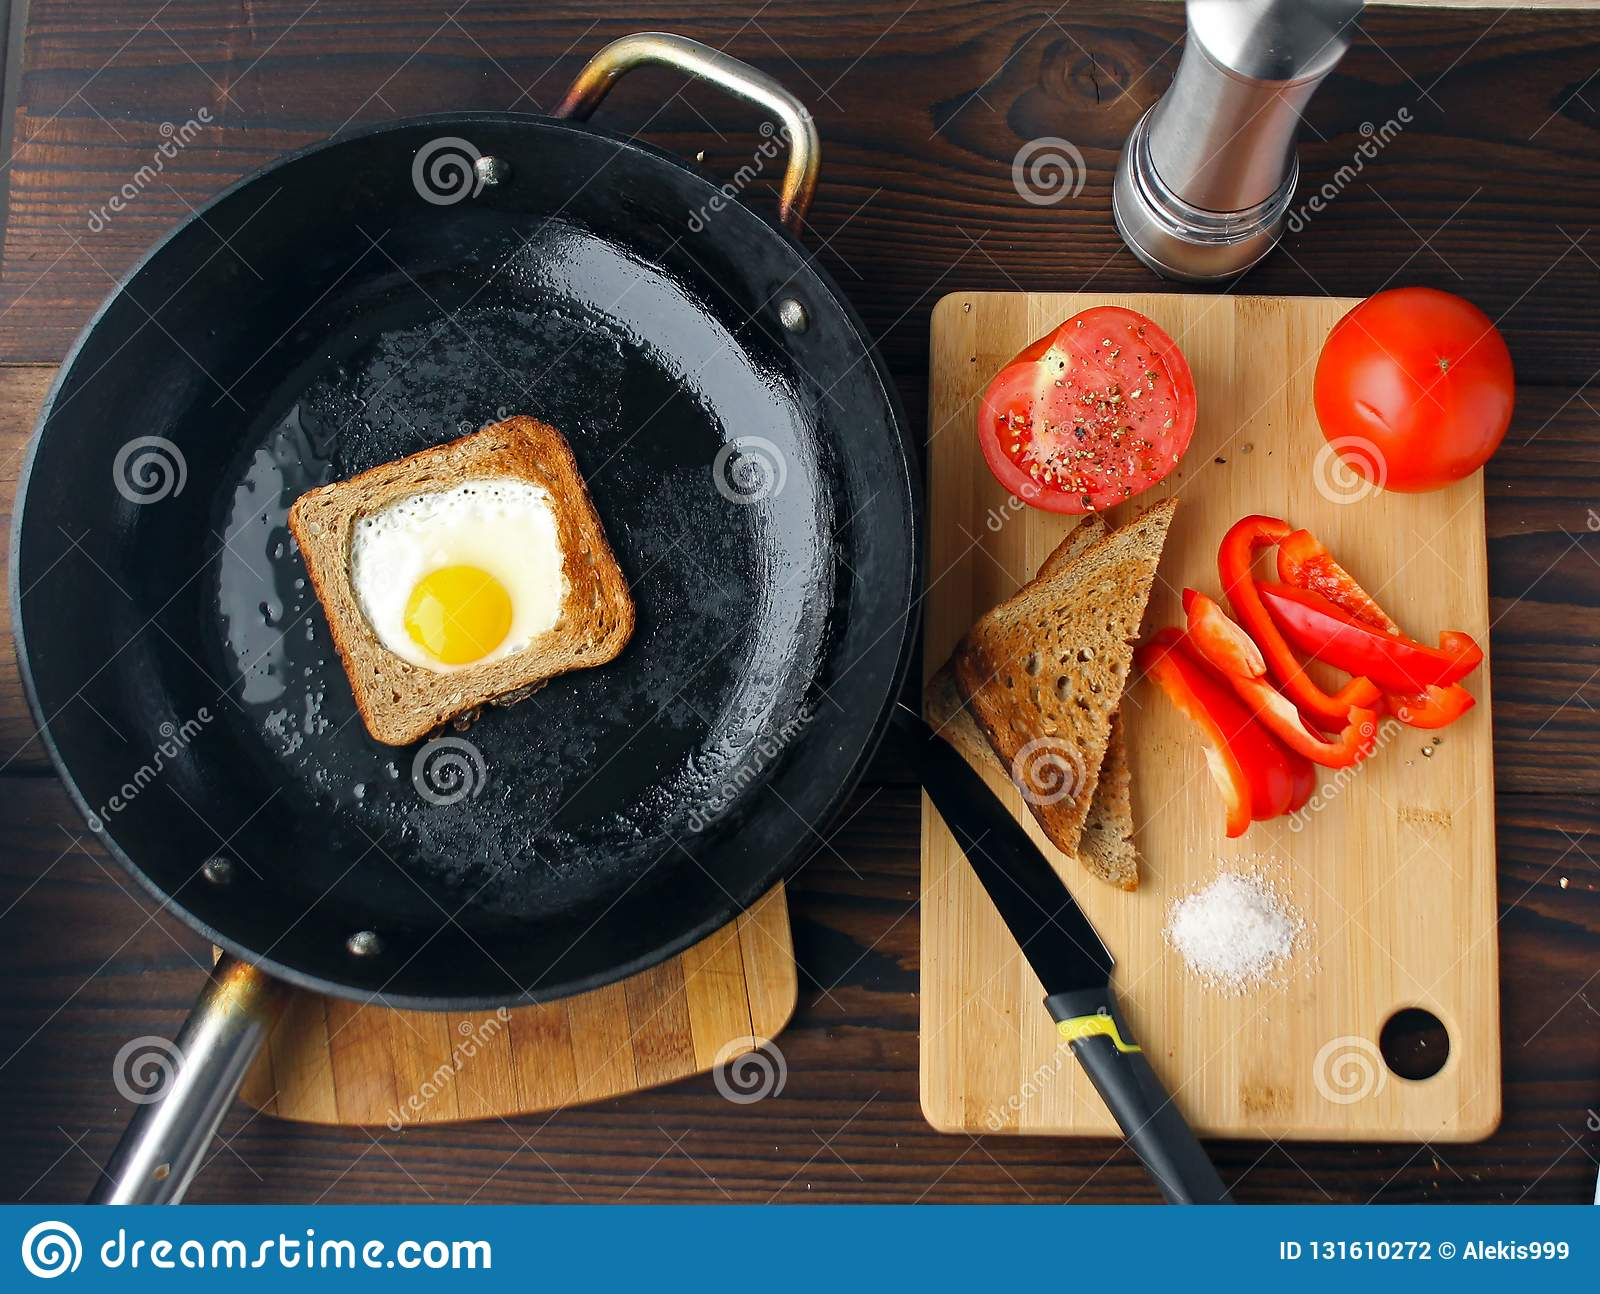 Fried eggs in bread in a pan with cut vegetables on the table.